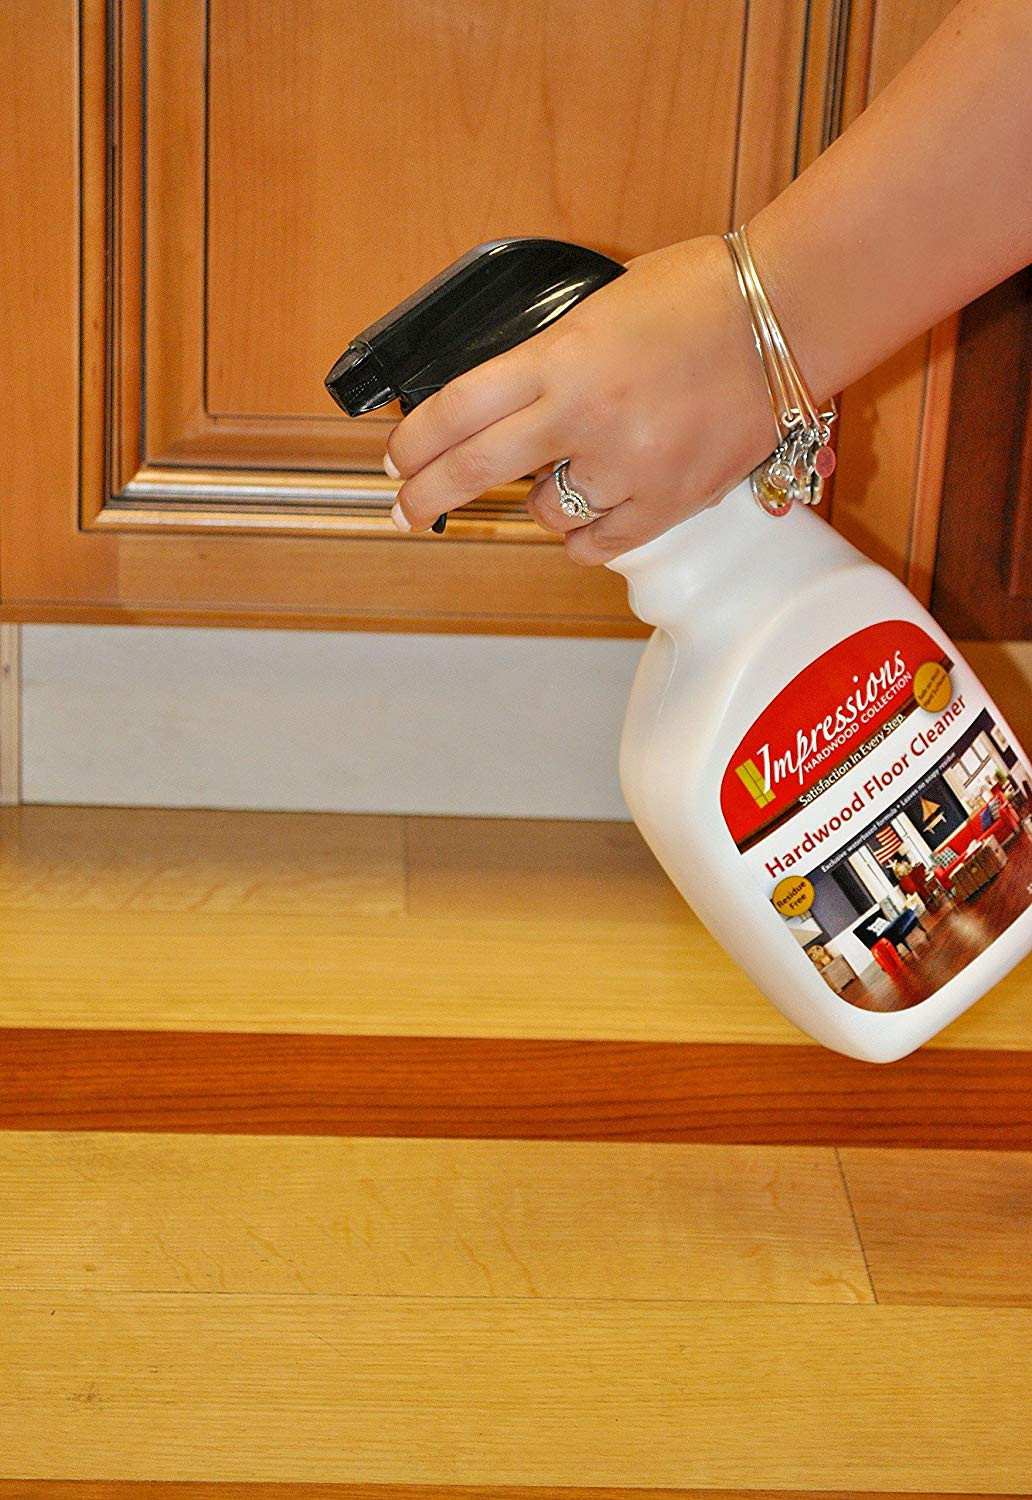 hardwood floor deep cleaning services of amazon com impressions hardwood floor cleaner home kitchen intended for a1e0rlj5rdl sl1500